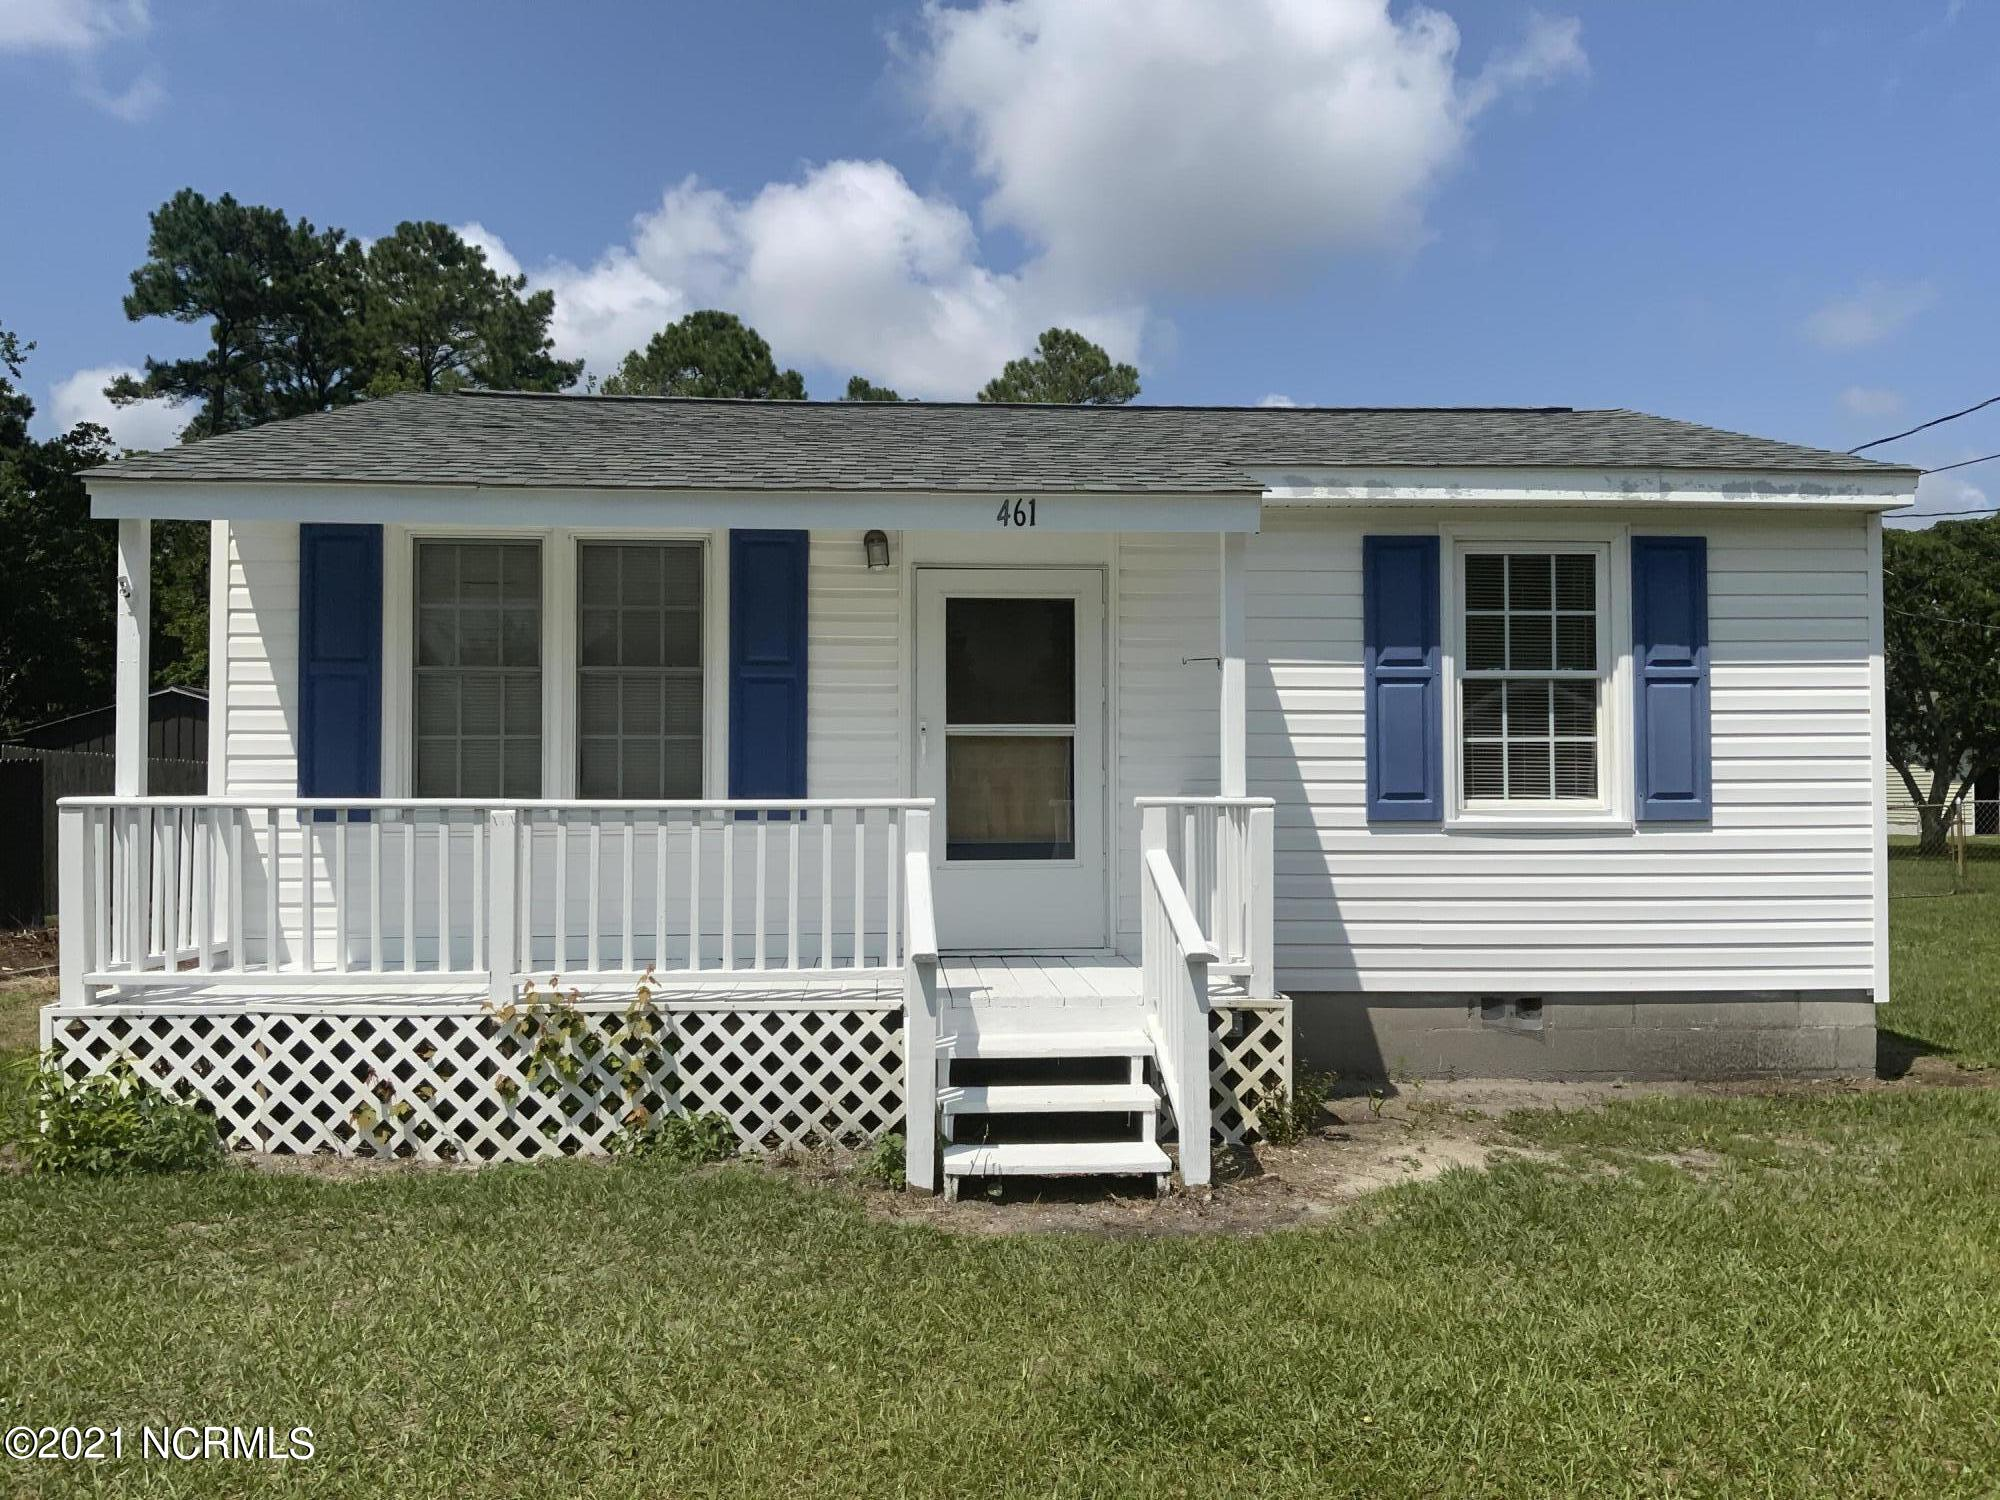 Cute bungalow conveniently located to Topsail Beach, Camp Lejeune, local restaurants, and shopping.  Great 2 bedroom, 1 bath home with a new roof and low utilities.  Looking to downsize, a vacation home, or just getting started?  Looking for a place to store your fishing and hunting toys?  Looking an affordable home located less than 5 miles from the beach and public boat ramp?  This is the home!  Contact your agent today and schedule a showing.